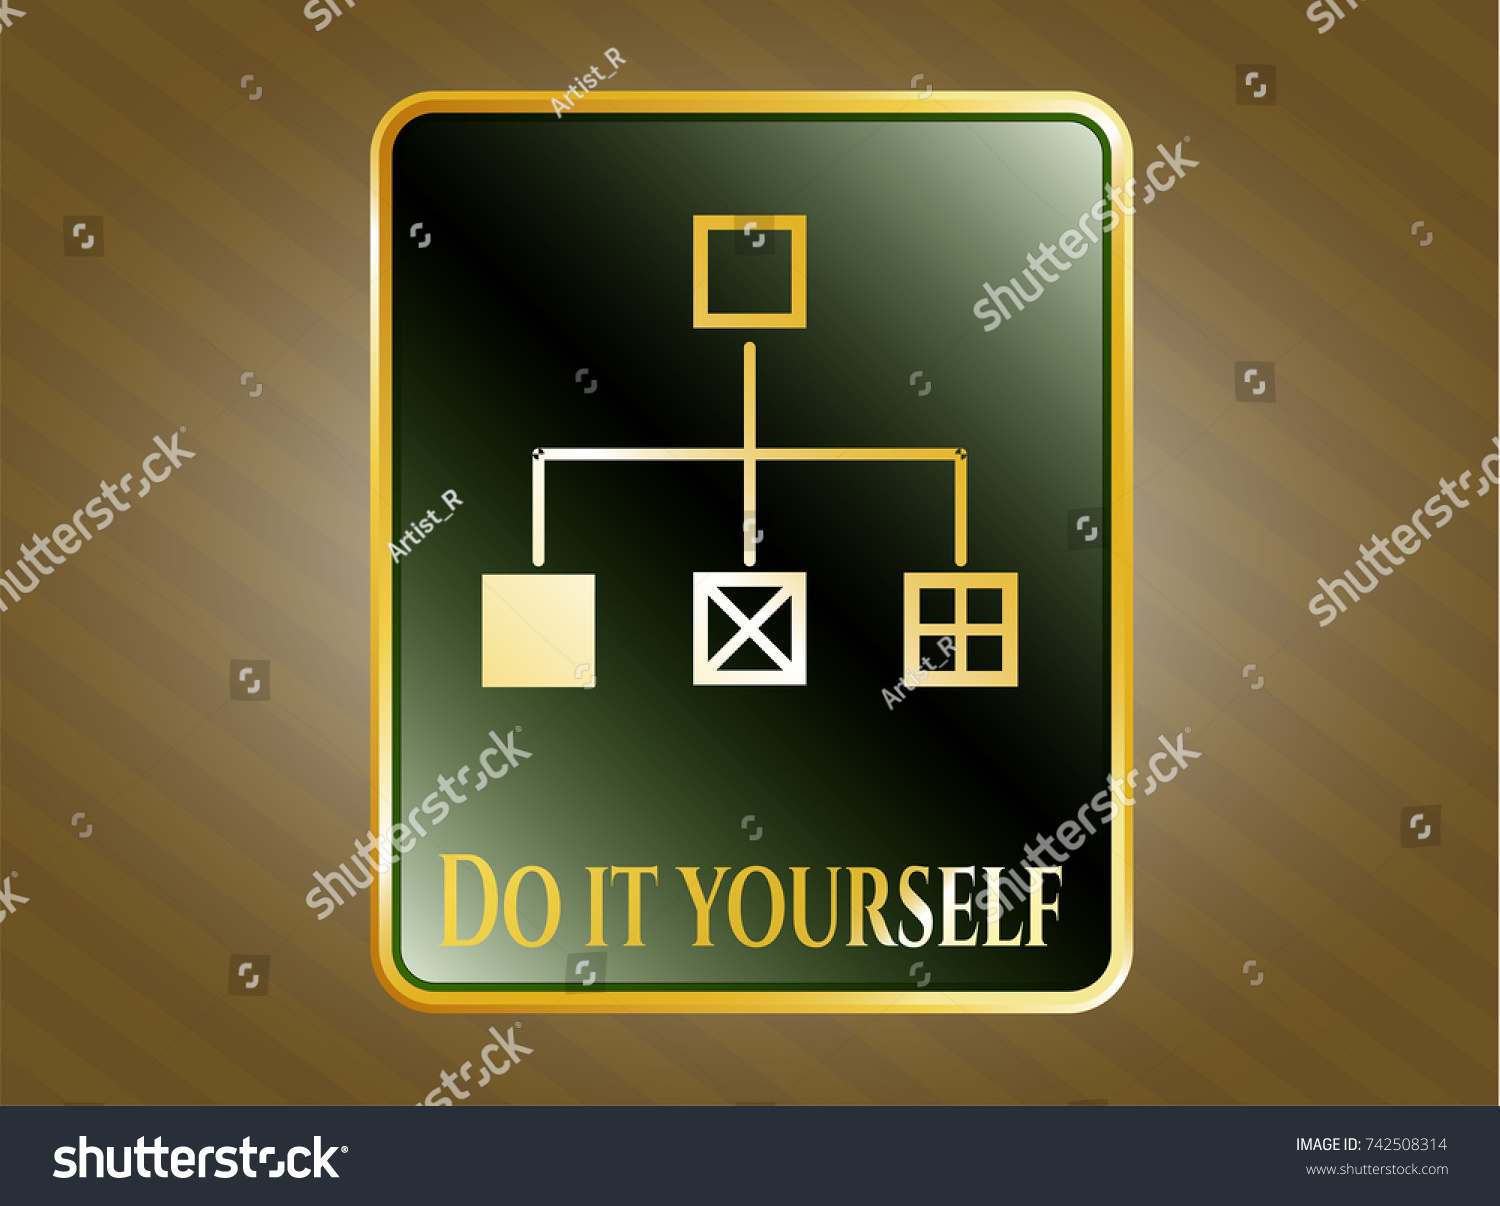 Gold emblem badge flowchart icon do stock vector 2018 742508314 gold emblem or badge with flowchart icon and do it yourself text inside solutioingenieria Image collections